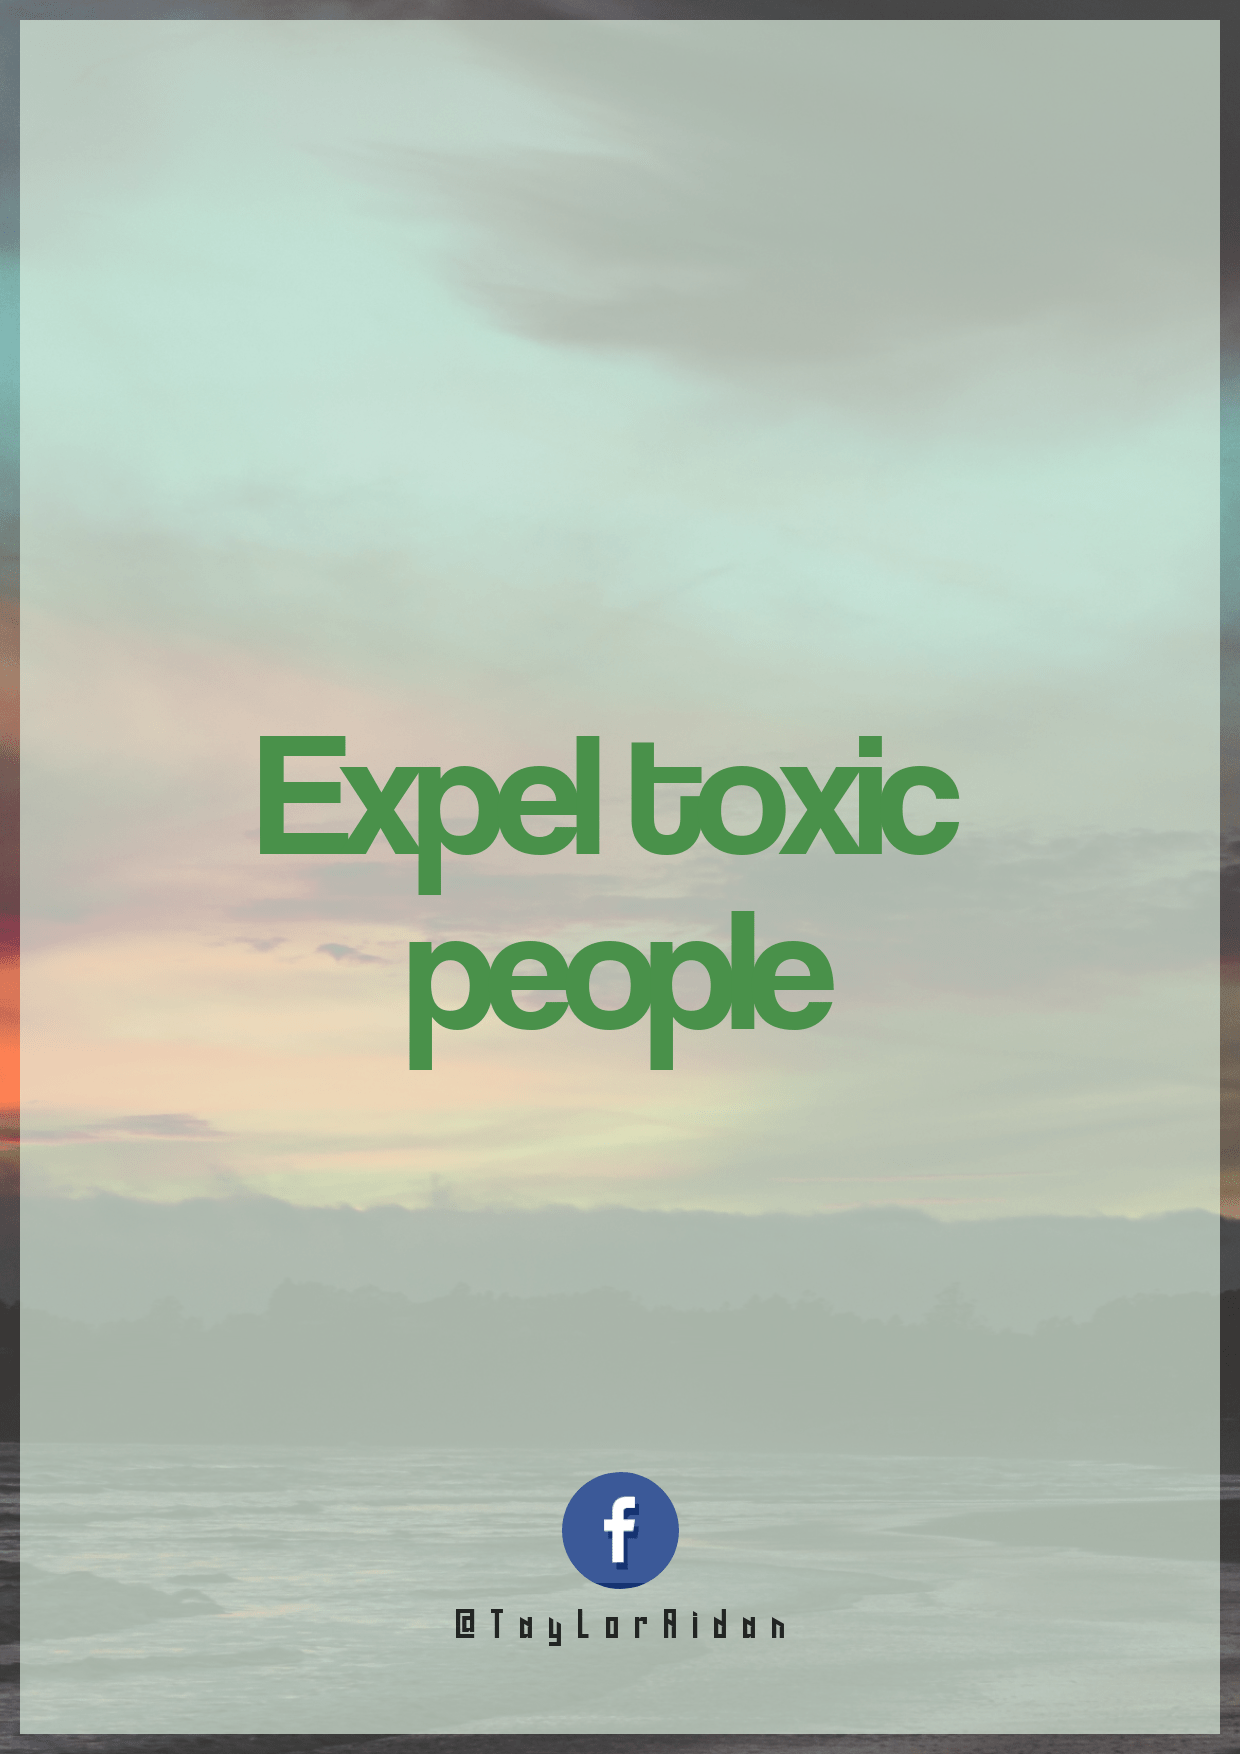 Sky,                Text,                Horizon,                Atmosphere,                Water,                Morning,                Sea,                Calm,                Resources,                Font,                Stinson,                Colorful,                Sand,                 Free Image